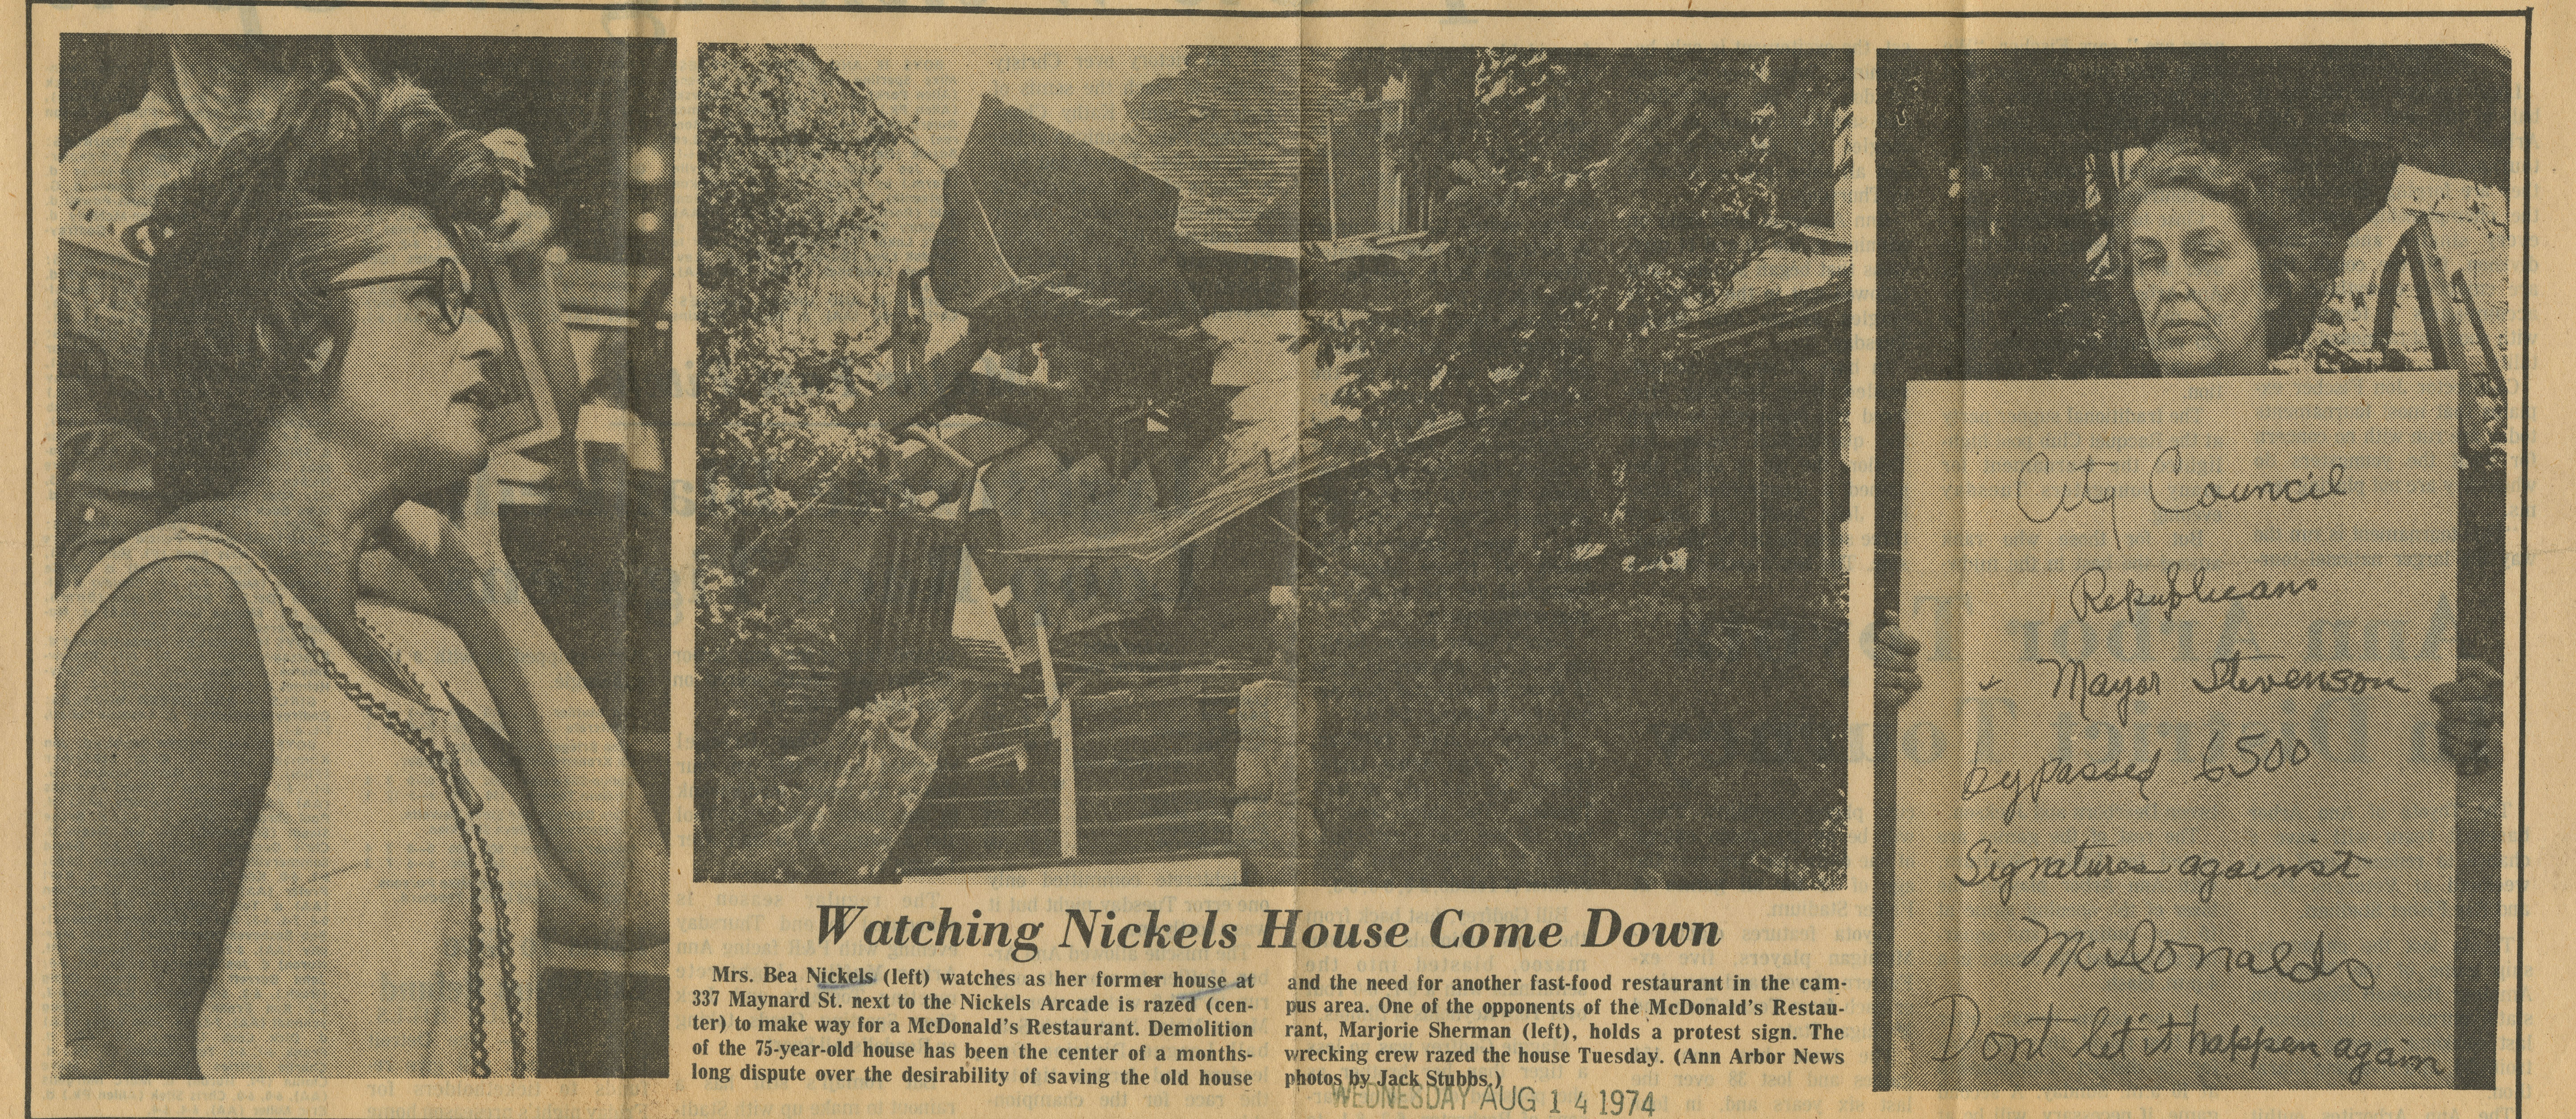 Watching Nickels House Come Down image